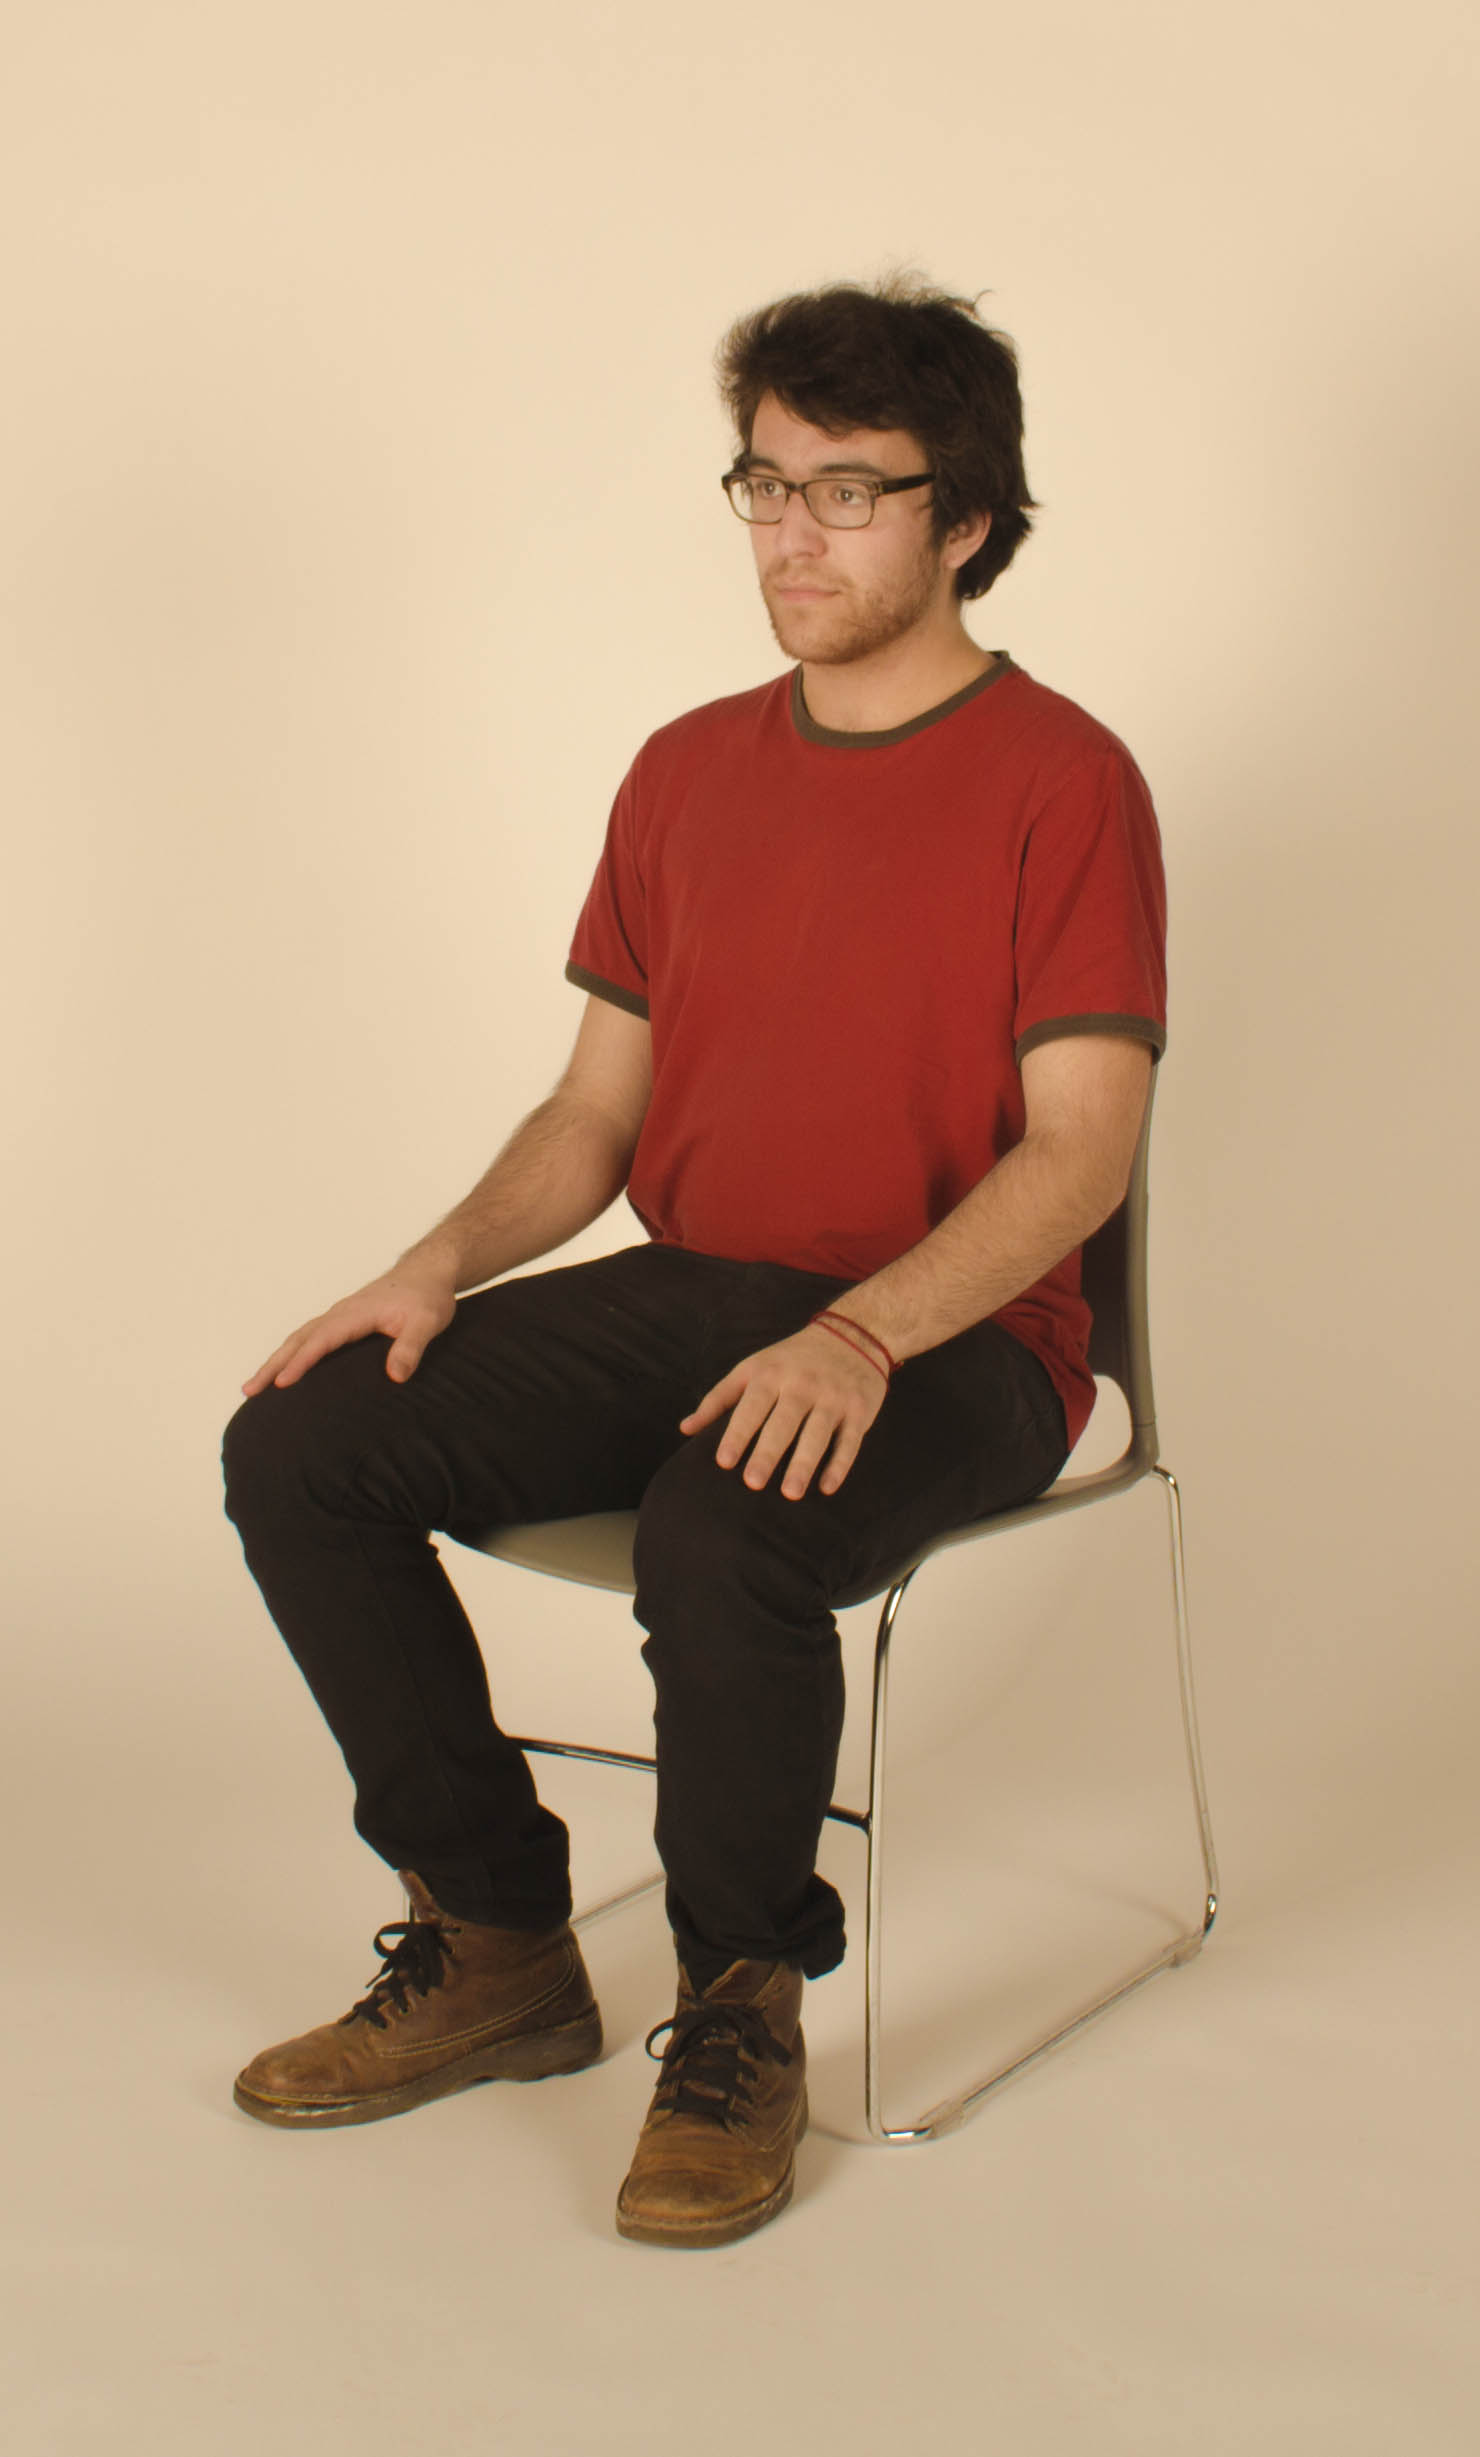 Fileyoung Man Sitting In A Chair Feb 2014jpg